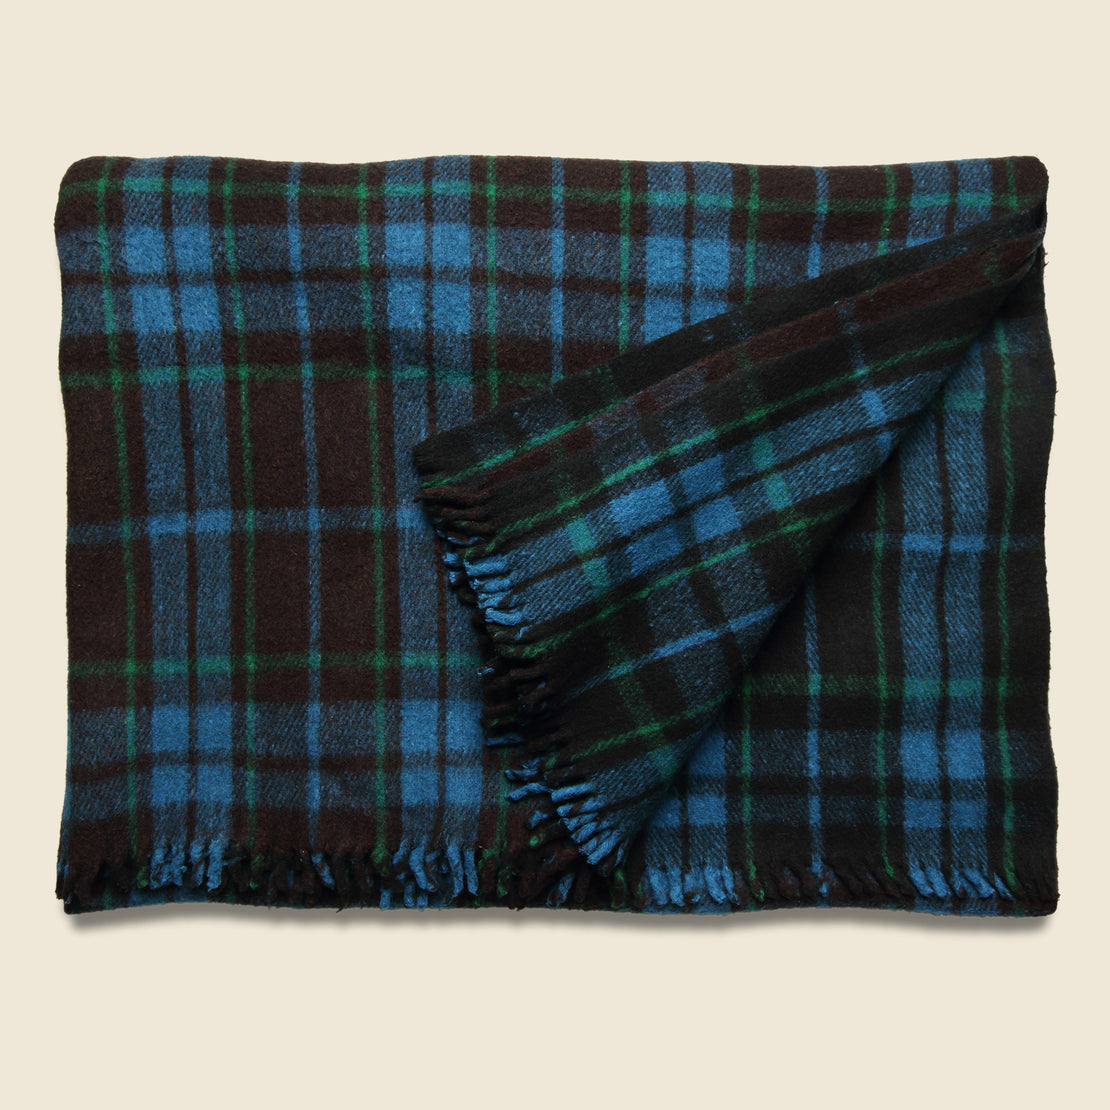 Vintage Vintage Indian Wool Plaid Blanket - Black/Green/Blue